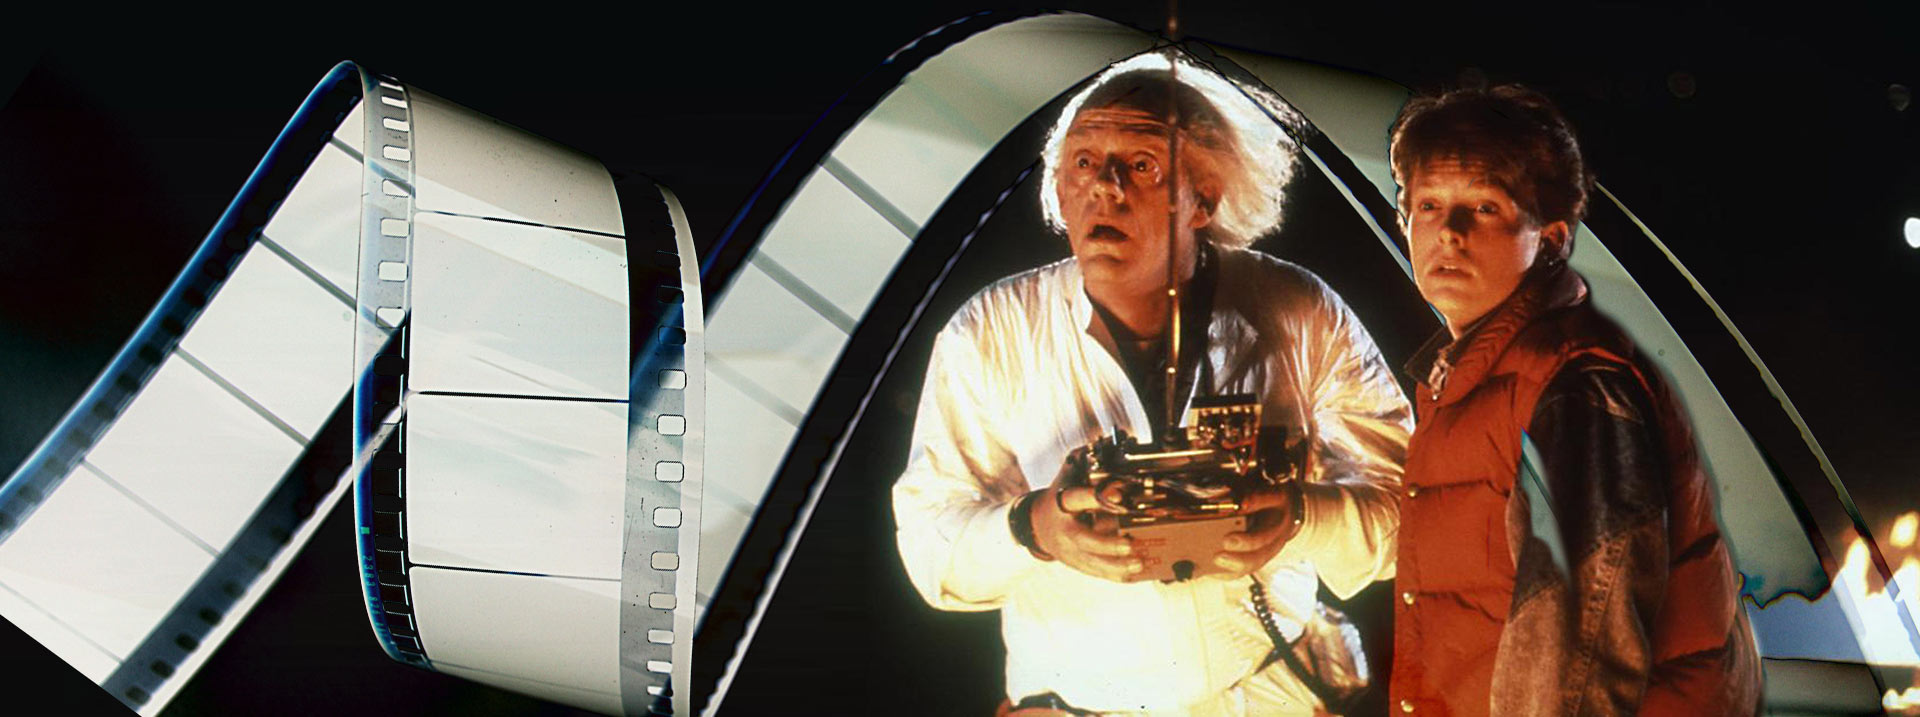 Dr. Emmet Brown and Marty McFly in Back To the Future with Film Reel flowing around them